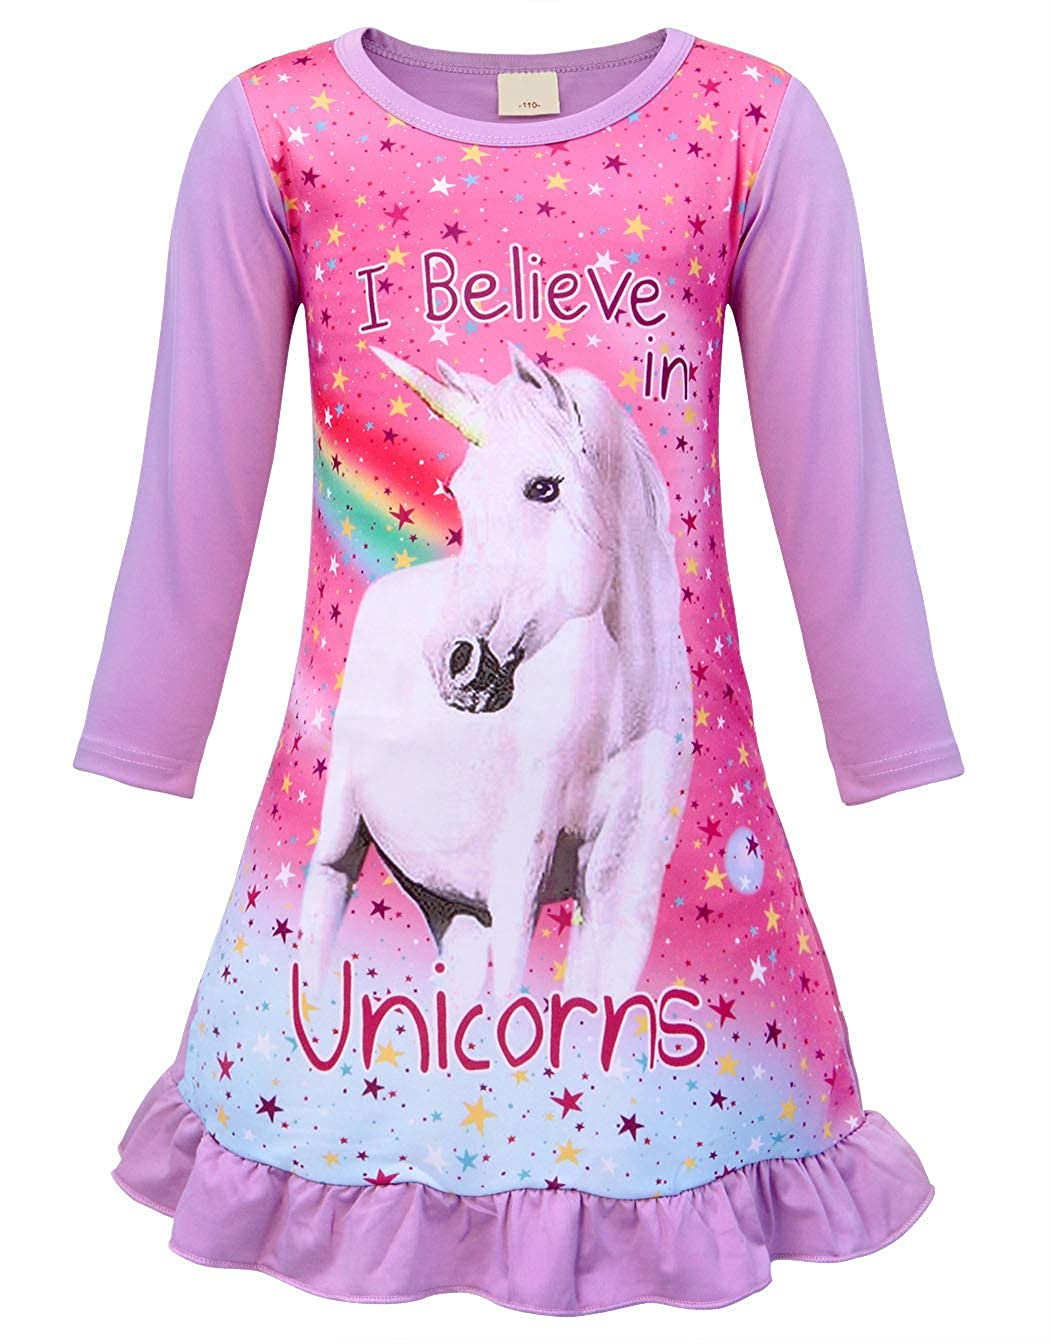 AmzBarley Girls Unicorn Nightgown Long Sleeve Unicorns Stary Nighties Night Dress Cotton Dressing Gown Nightgowns Nightie Sleepwear Casual Homewear Halloween Birthday Costume